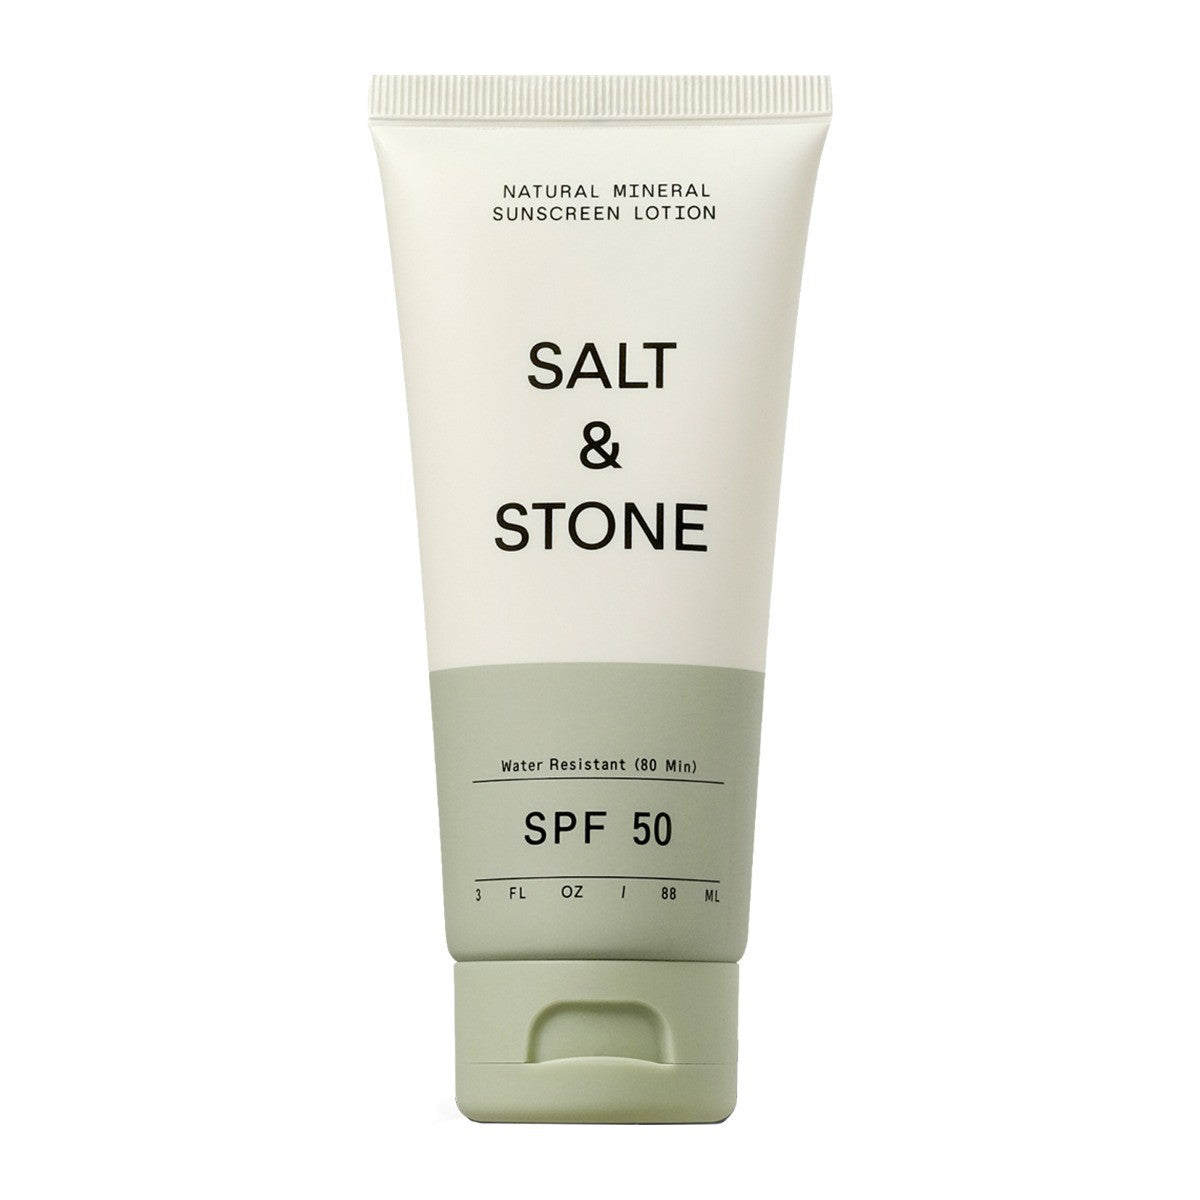 Salt & Stone SPF 50+ Sunscreen Lotion